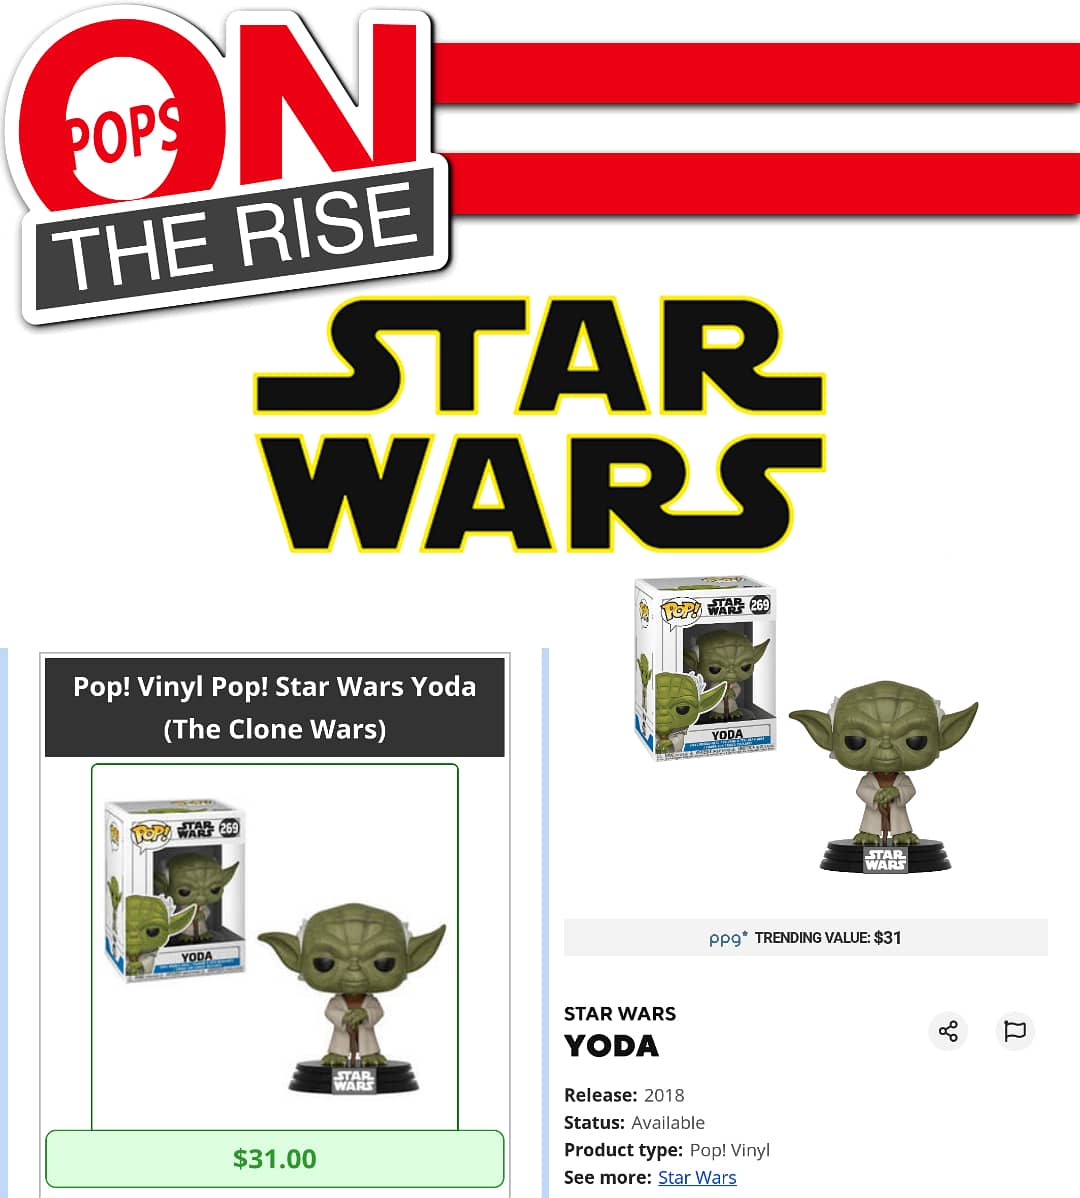 #Popsontherise Star Wars: Clone Wars Yoda Current Value: $31 Release year: 2018 Grand Master of the Jedi Order during the Clone Wars Yoda has always been among the most popular Star Wars Characters. With Clone wars being in its Final season this with other pops r riding in valuepic.twitter.com/9FgOqWa1CO